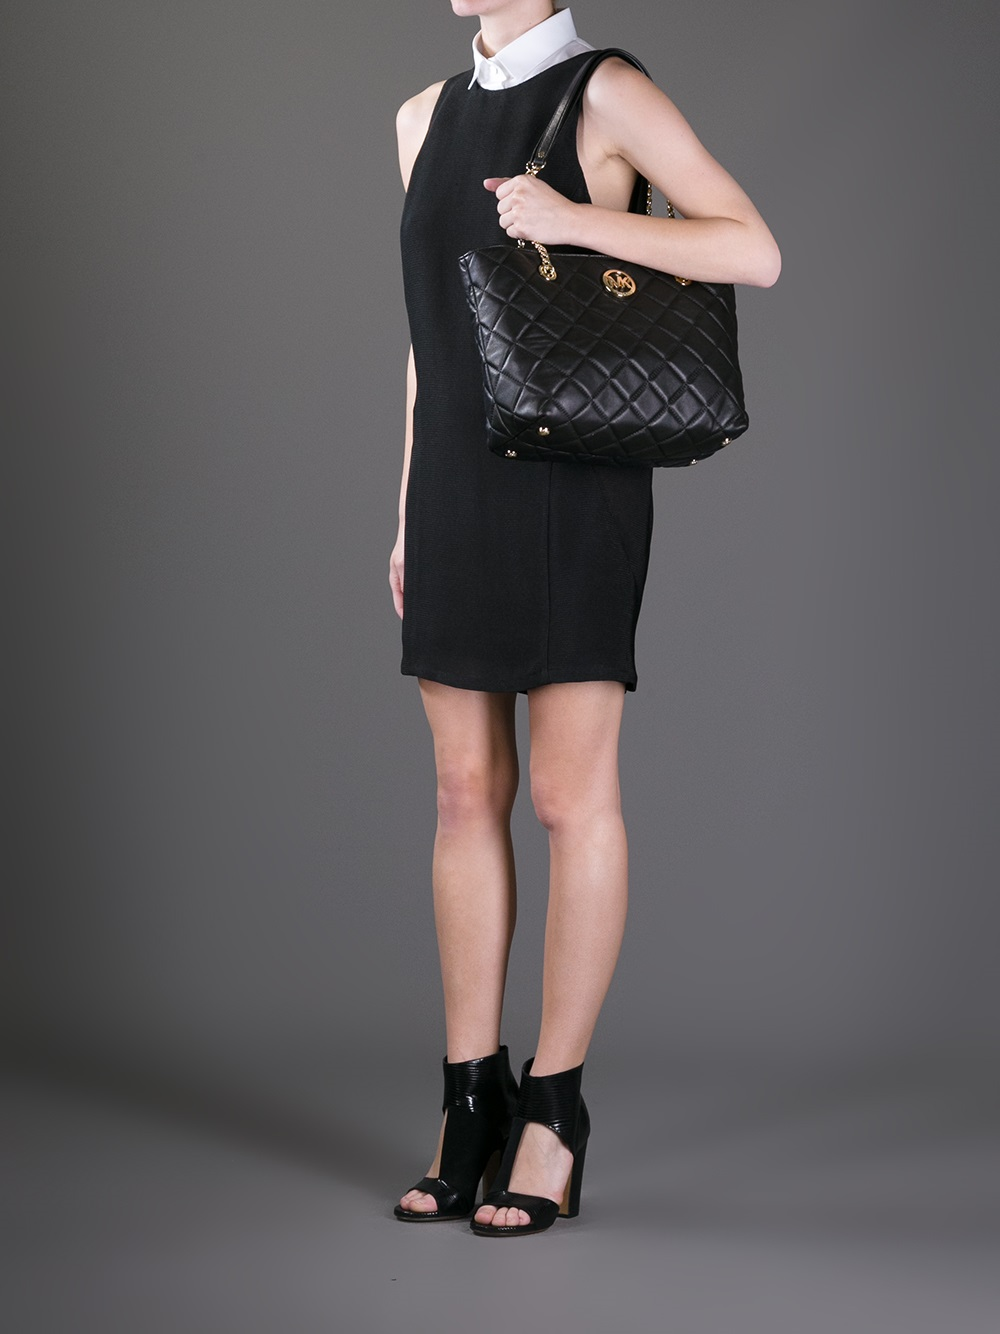 Lyst - Michael michael kors Fulton Large Quilted Tote in Black : michael kors fulton quilted tote - Adamdwight.com